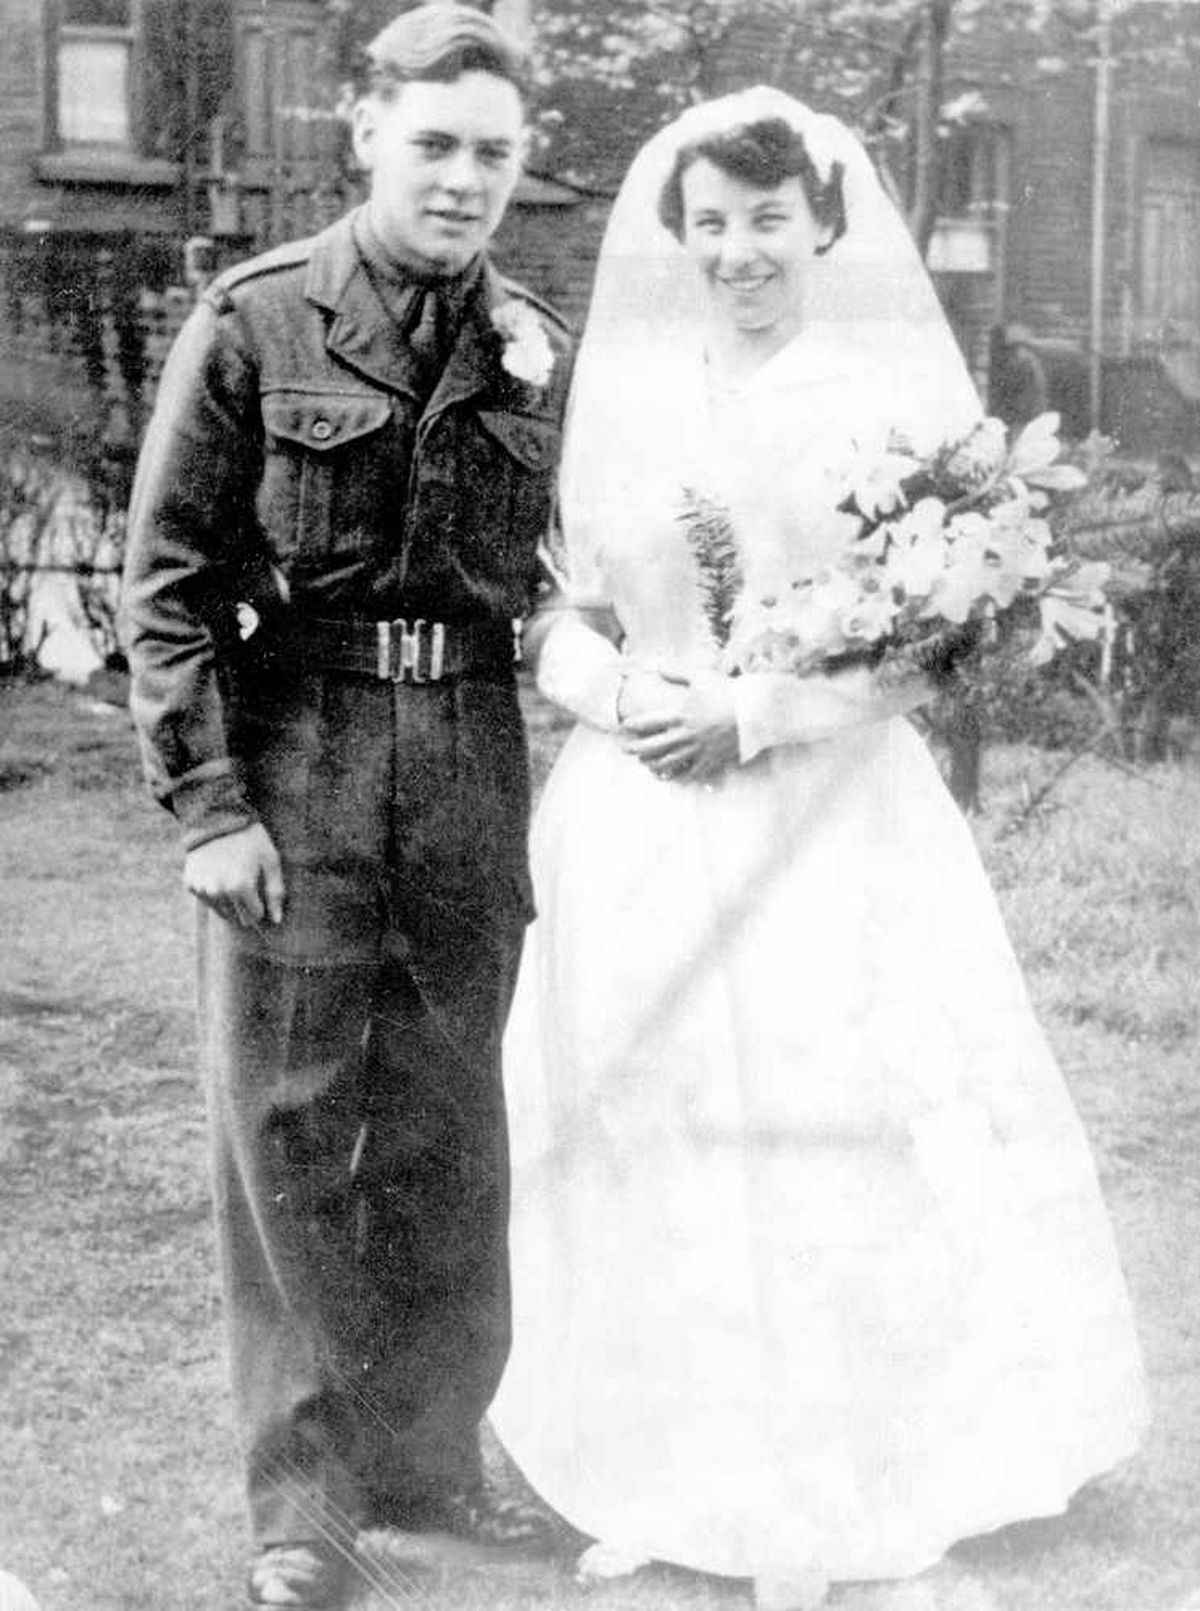 Neilson, aged 18 and called at that time Donald Nappey, at his wedding on April 30, 1955, at Morley. He later changed his name.